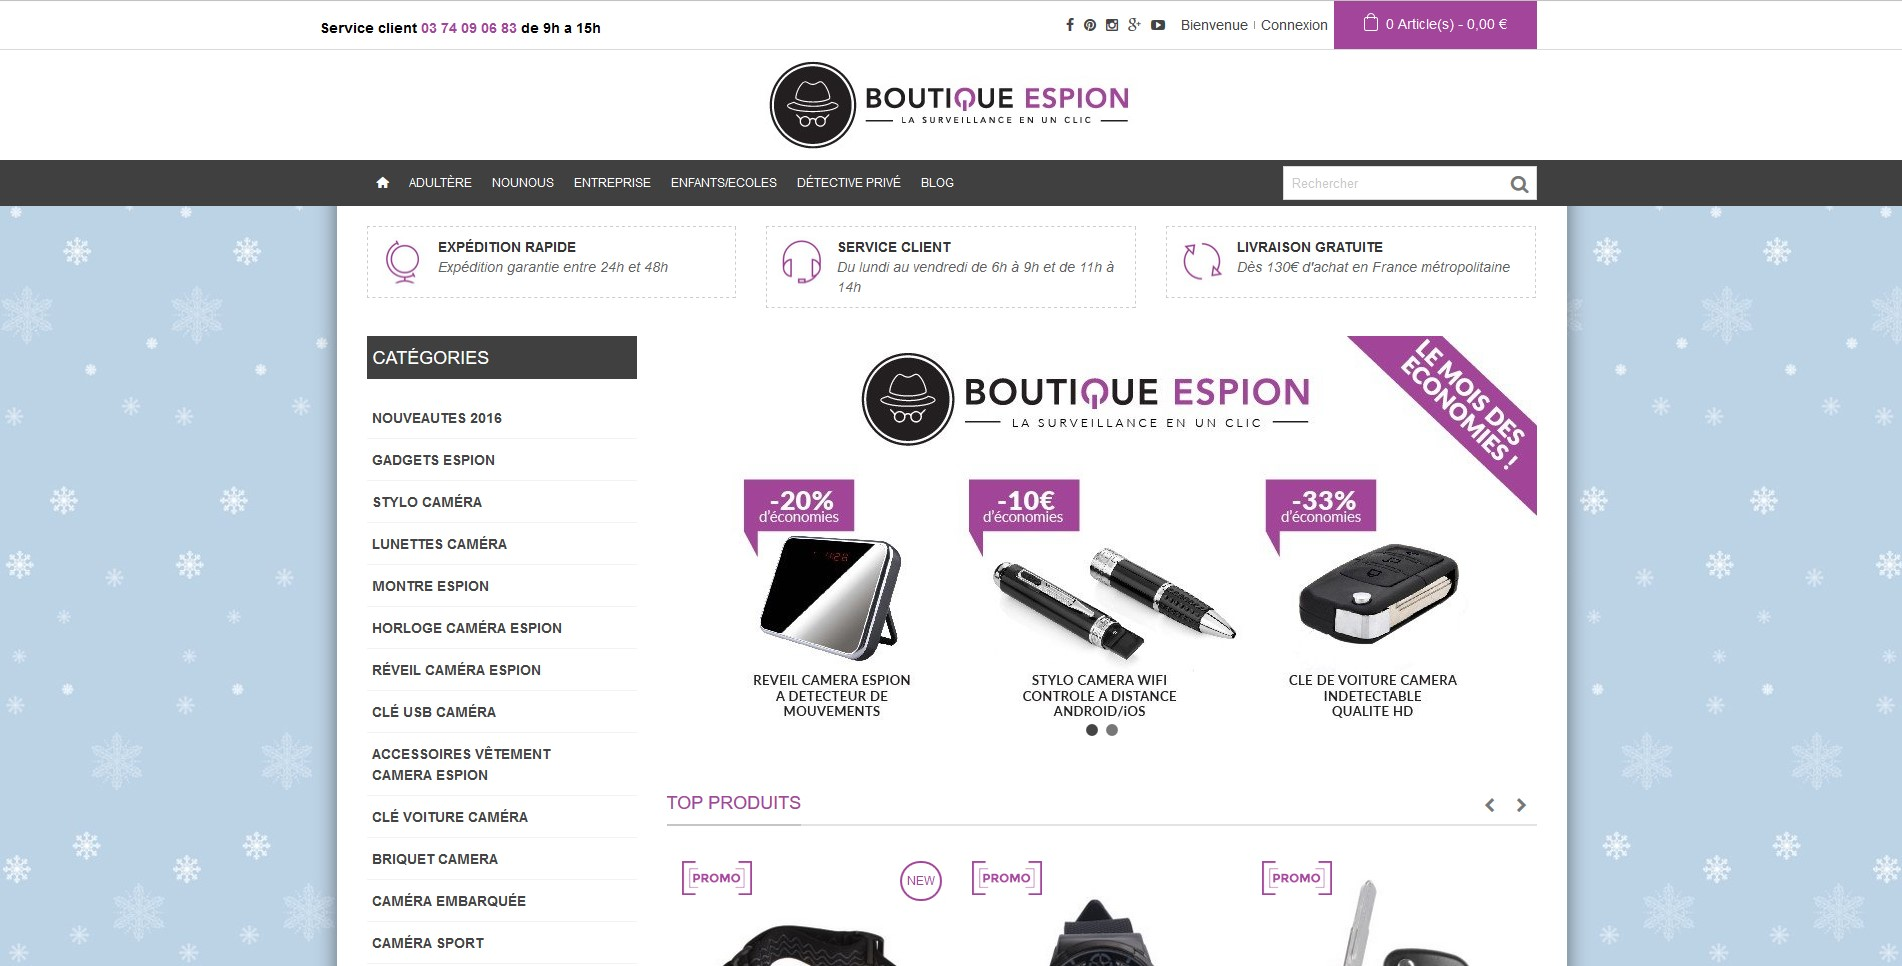 Https://boutique-espion.fr